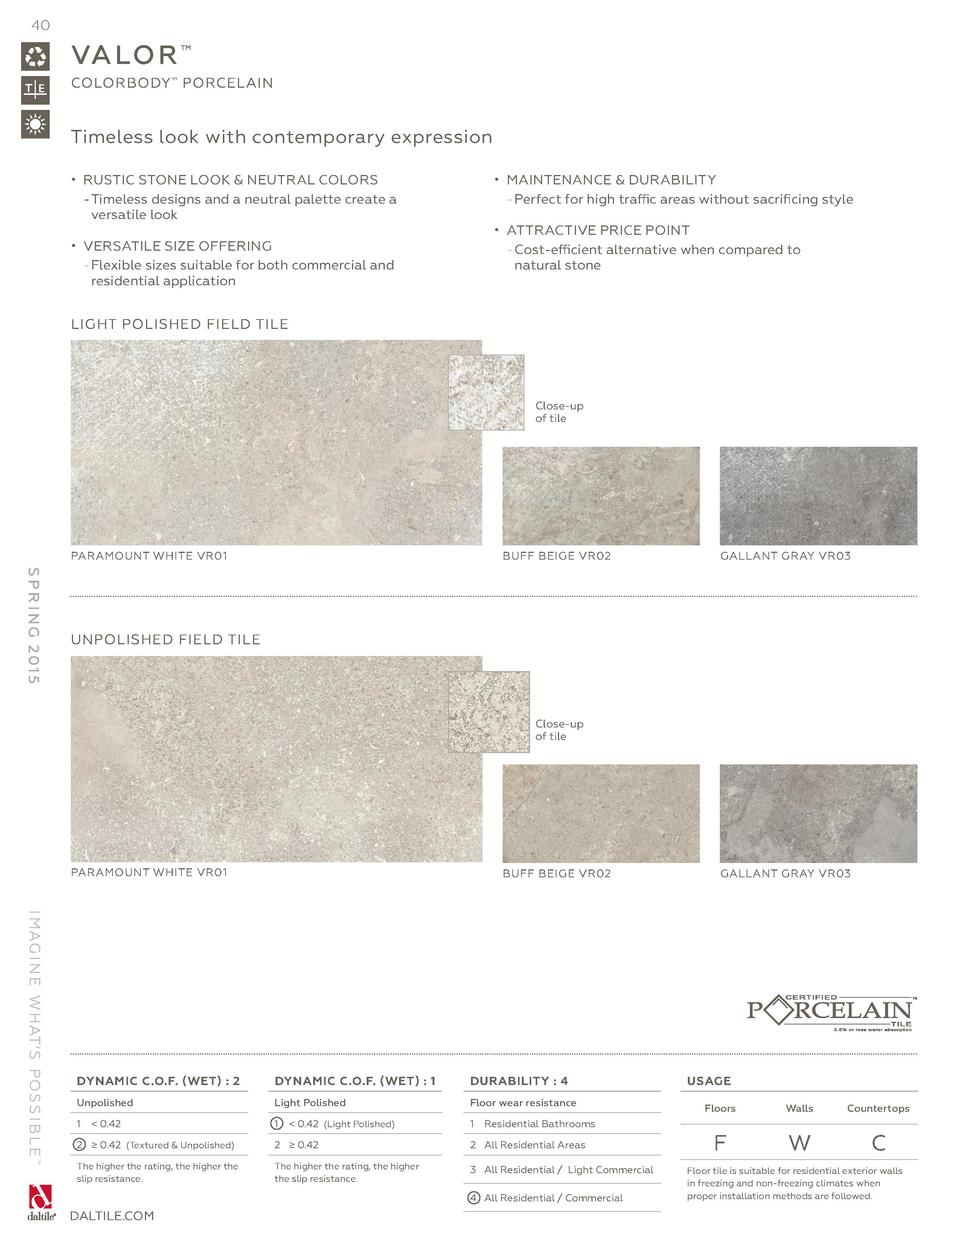 Daltile Spring 2015 Catalog Austin Wedges Montana Beige 40 Va Lo R Colorbody Porcelain Timeless Look With Contemporary Expression Rustic Stone